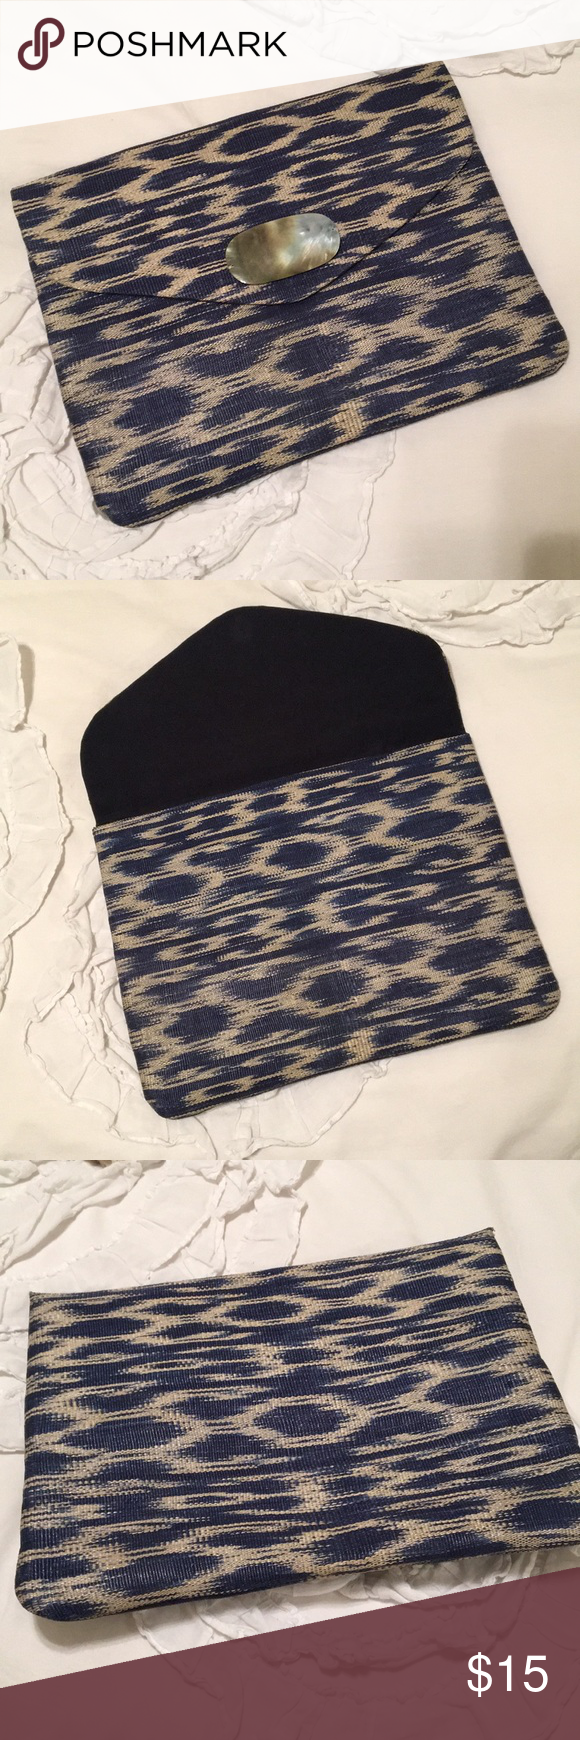 Lucky Brand pouch closure Navy and off white